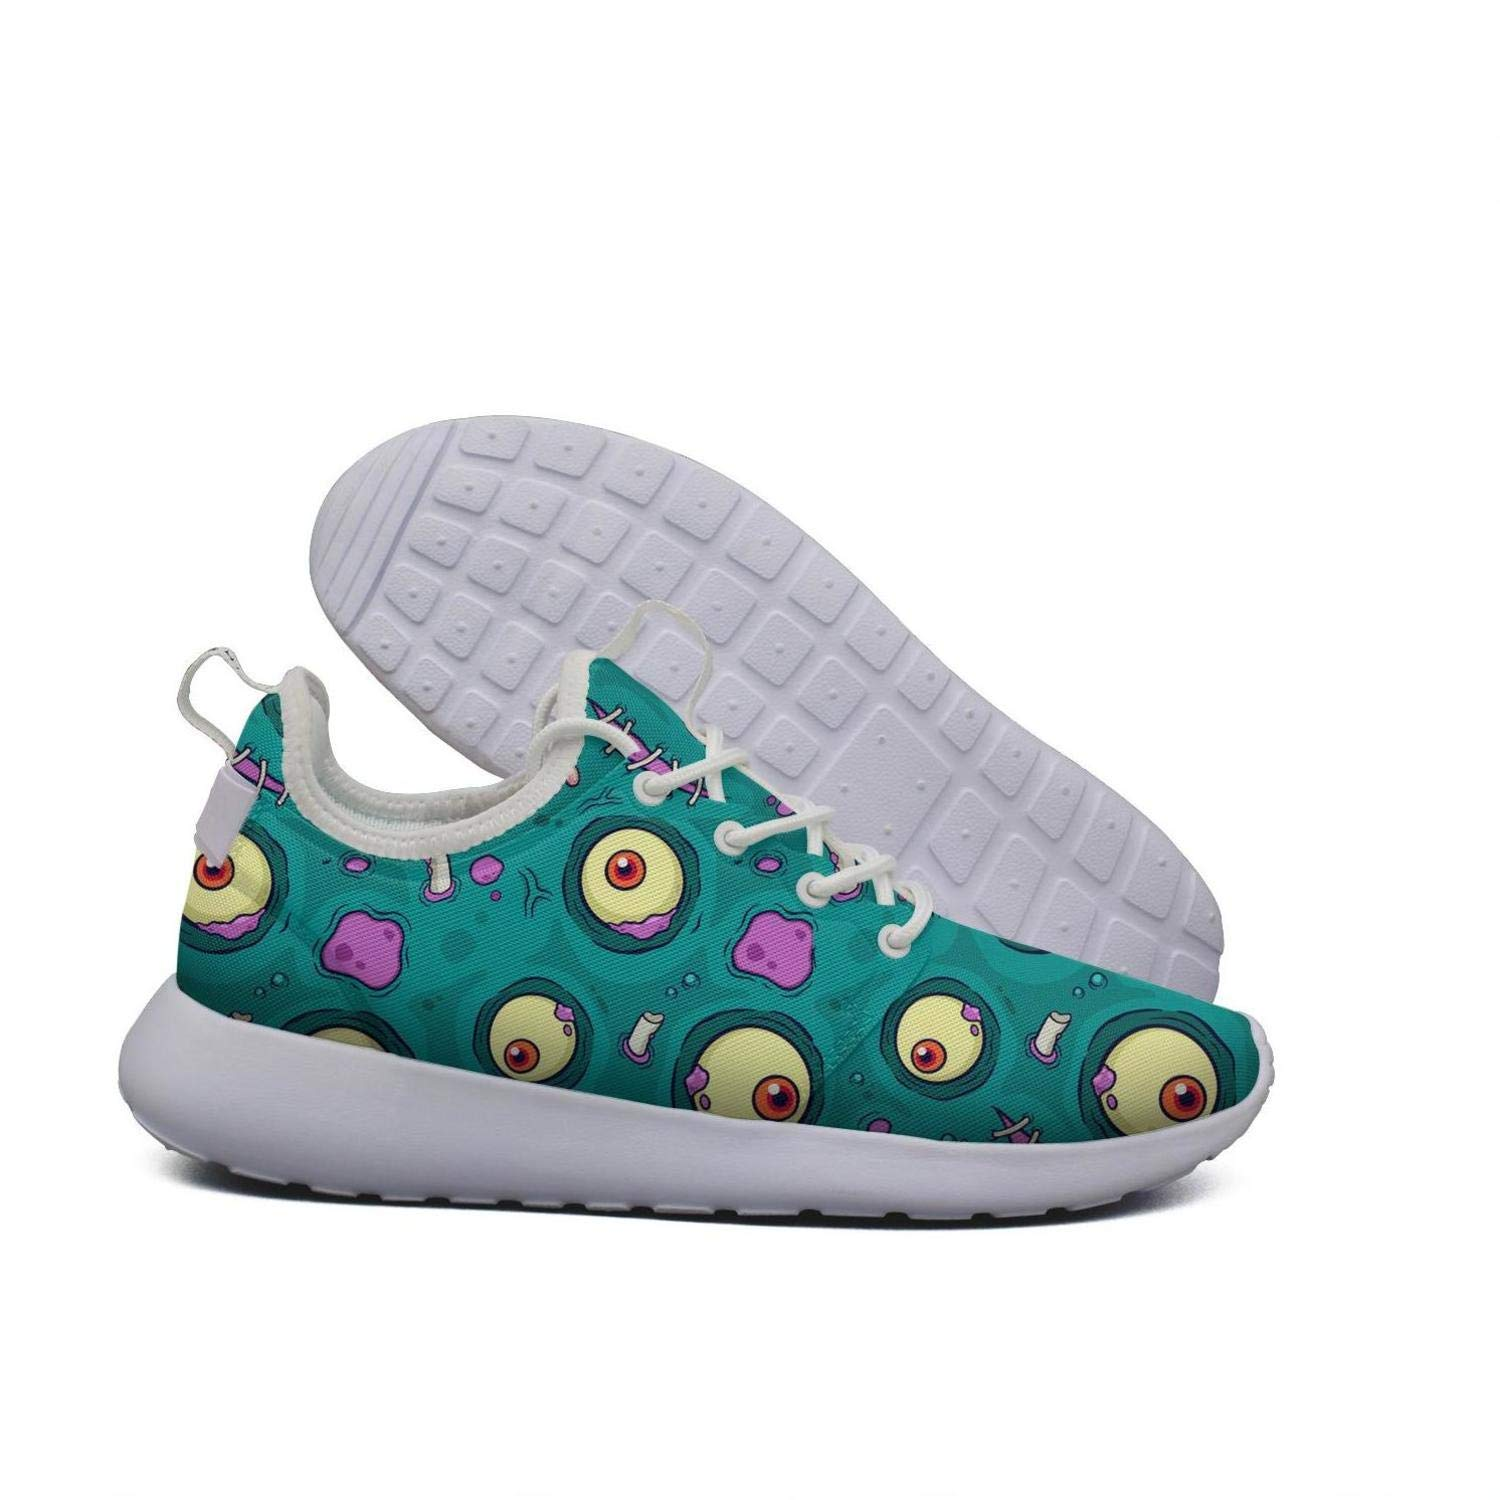 01fb6d13111c Cheap Zombie Shoes, find Zombie Shoes deals on line at Alibaba.com